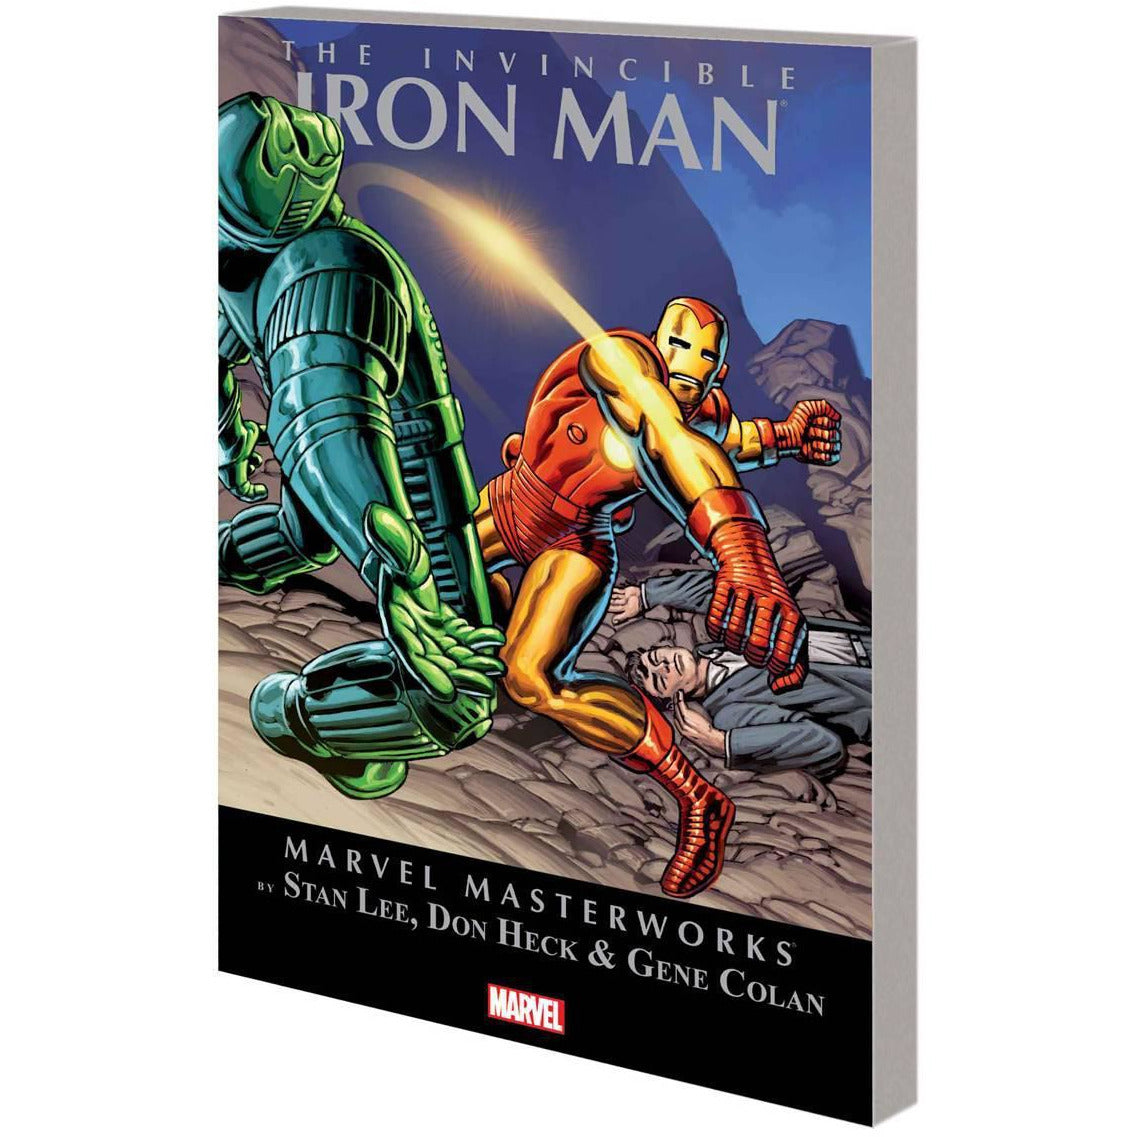 MARVEL MASTERWORKS INVINCIBLE IRON MAN TP VOL 03